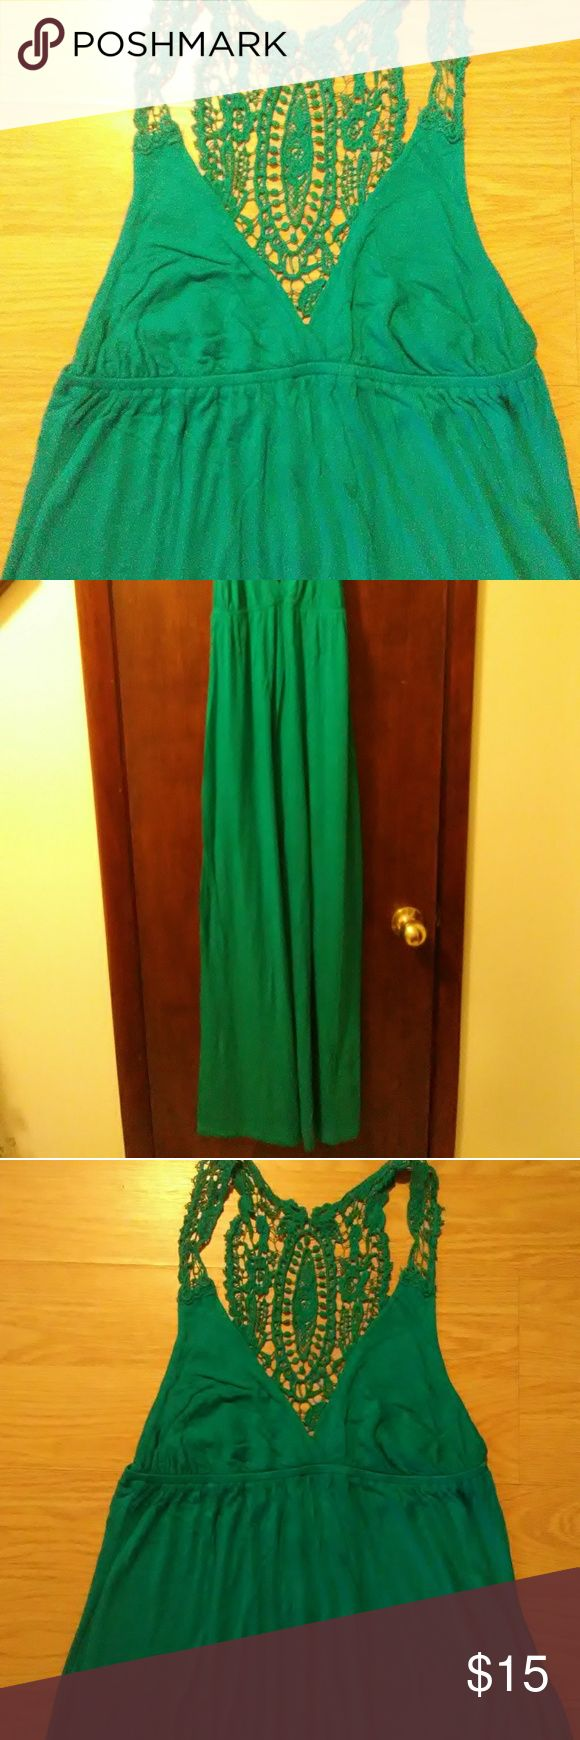 """Forever 21 turquoise maxi dress size M Gently worn, in great condition forever 21 brand long maxi turquoise dress women's size M. Dress is very long I'm 5'10"""" and it goes to the floor. Forever 21 Dresses Maxi"""